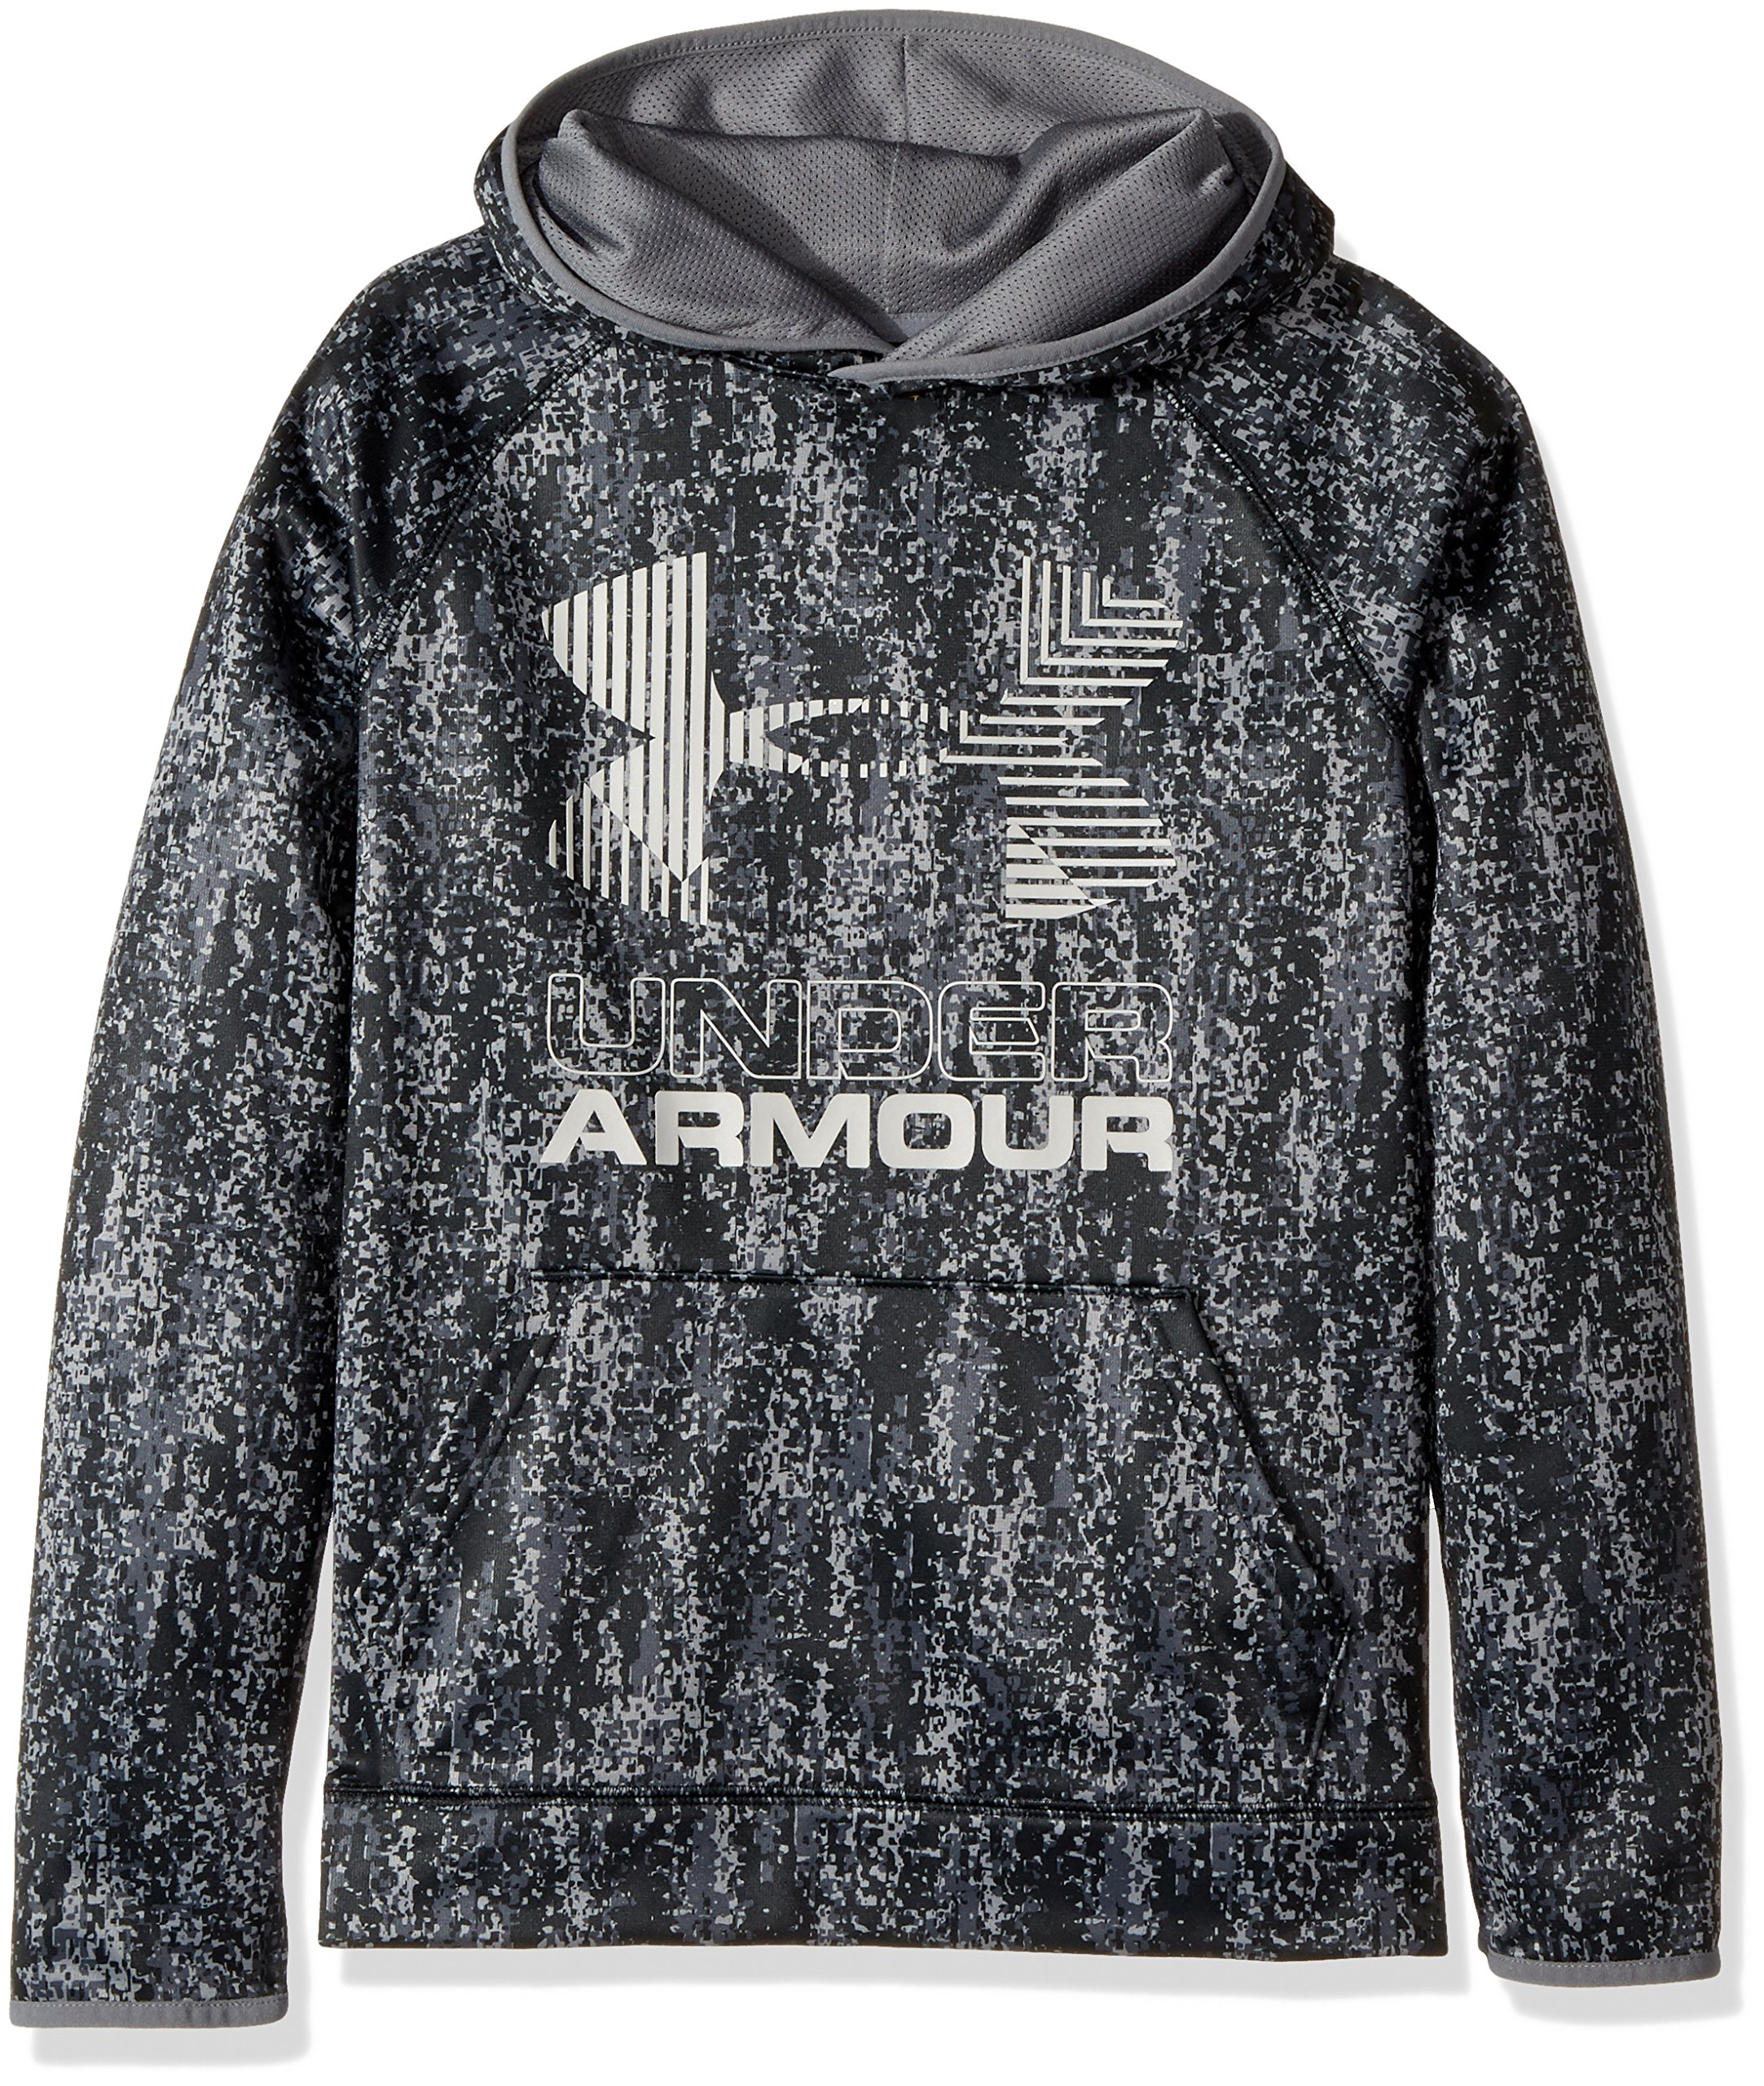 Under Armour Boys' Armour Fleece Printed Big Logo Hoodie, Black /Black, Youth Small by Under Armour